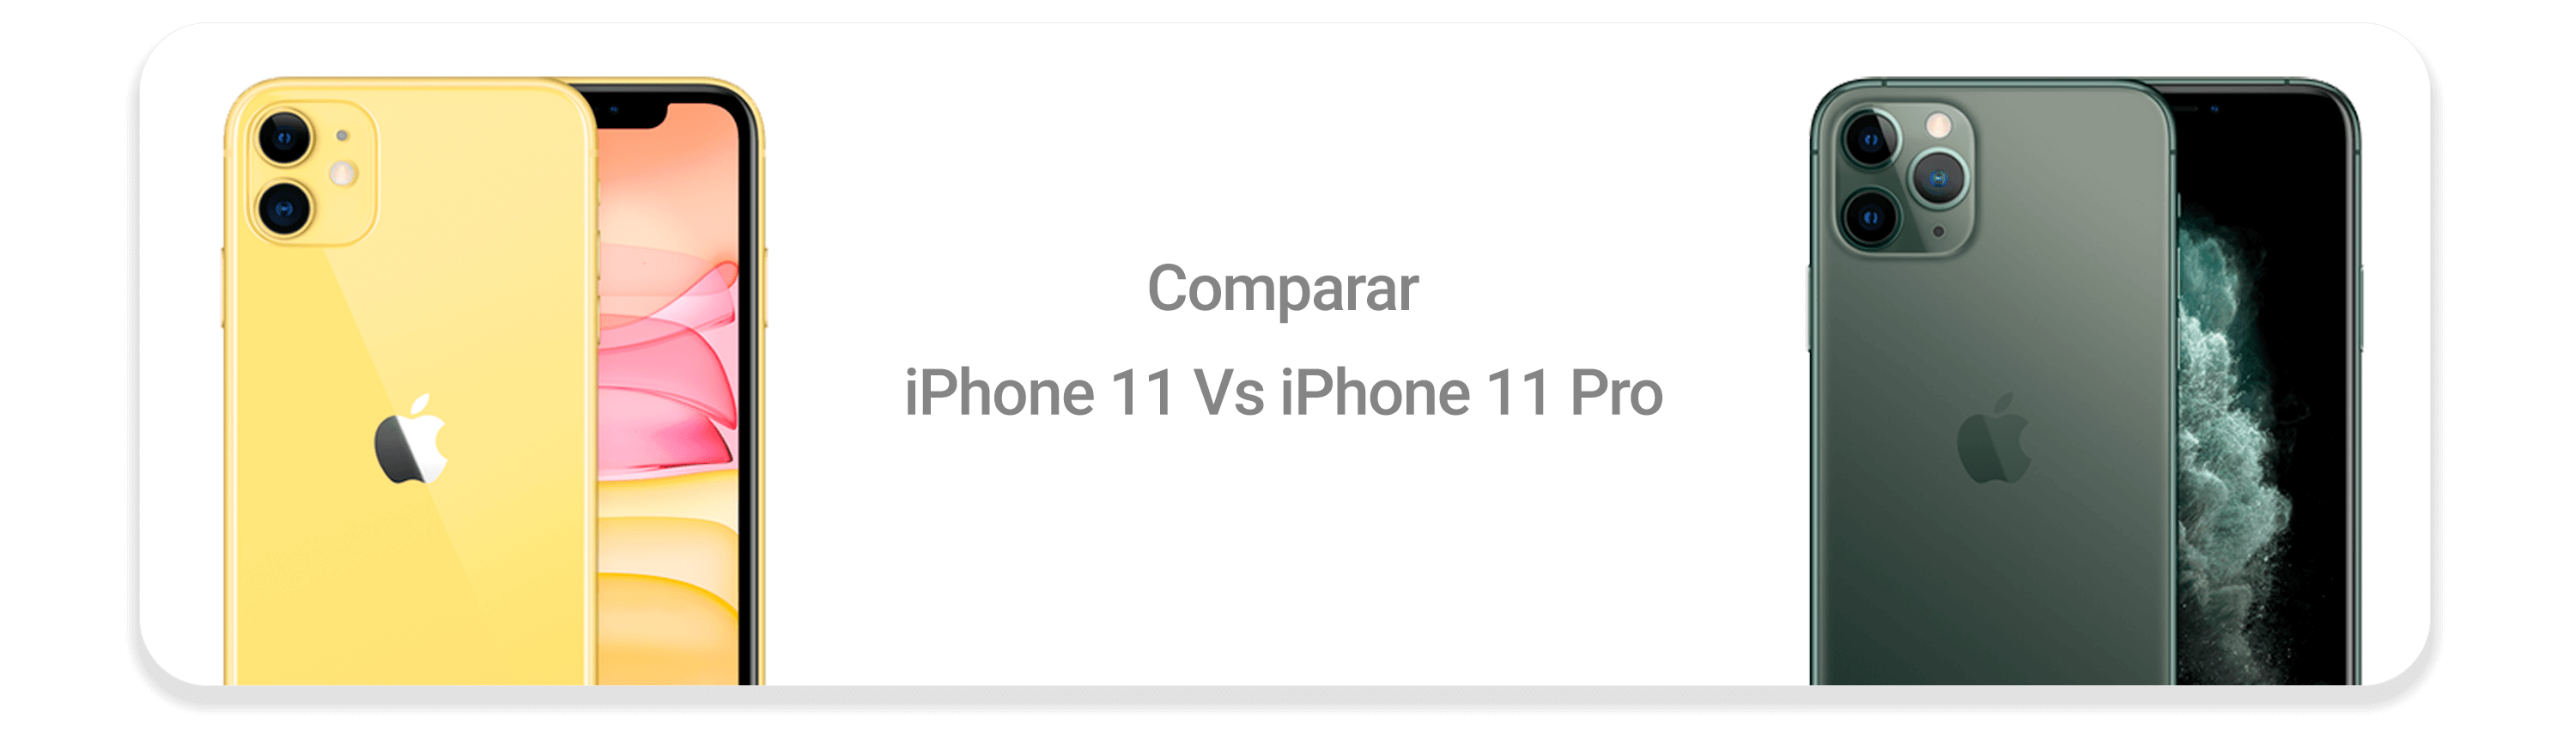 comparar-iphone-11-vs-iphone-11-pro.png